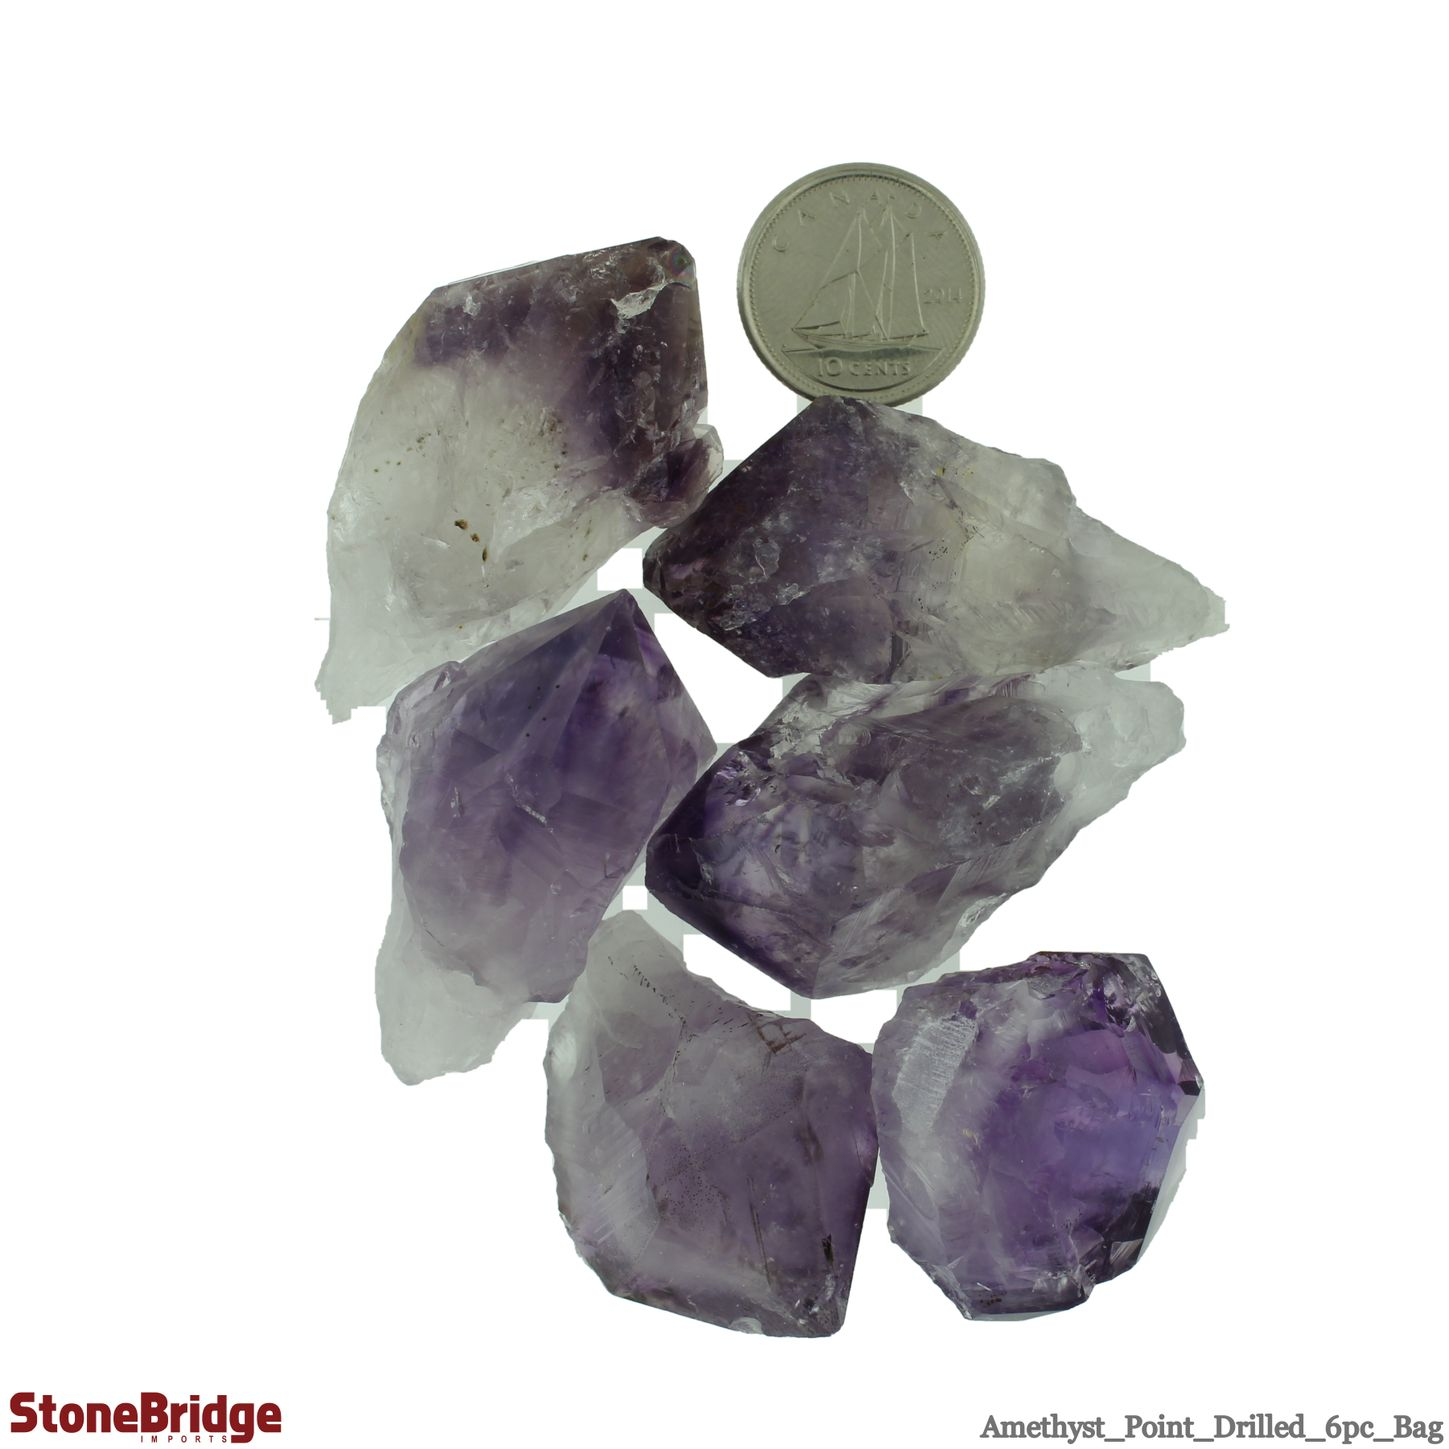 POAMDRbag1_Amethyst_Point_Drilled_6pc_Bag_3.jpg